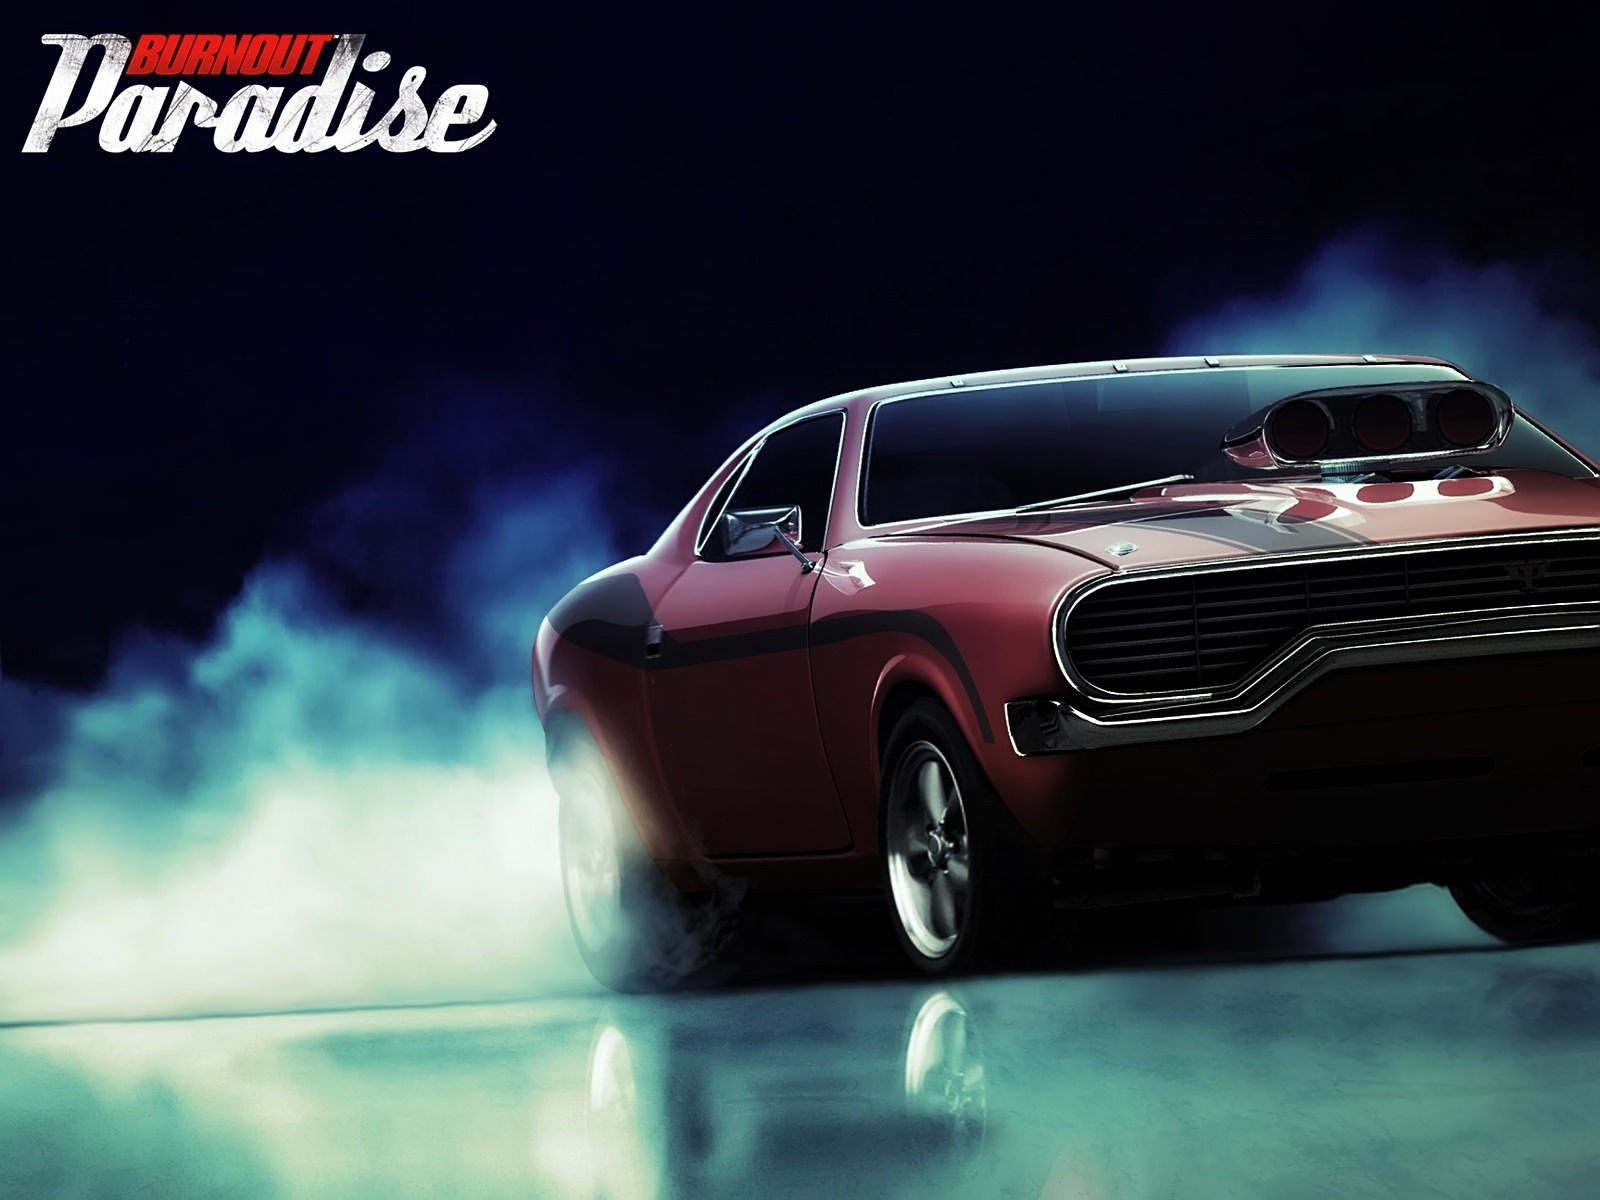 Burnout Paradise HD Wallpapers ...